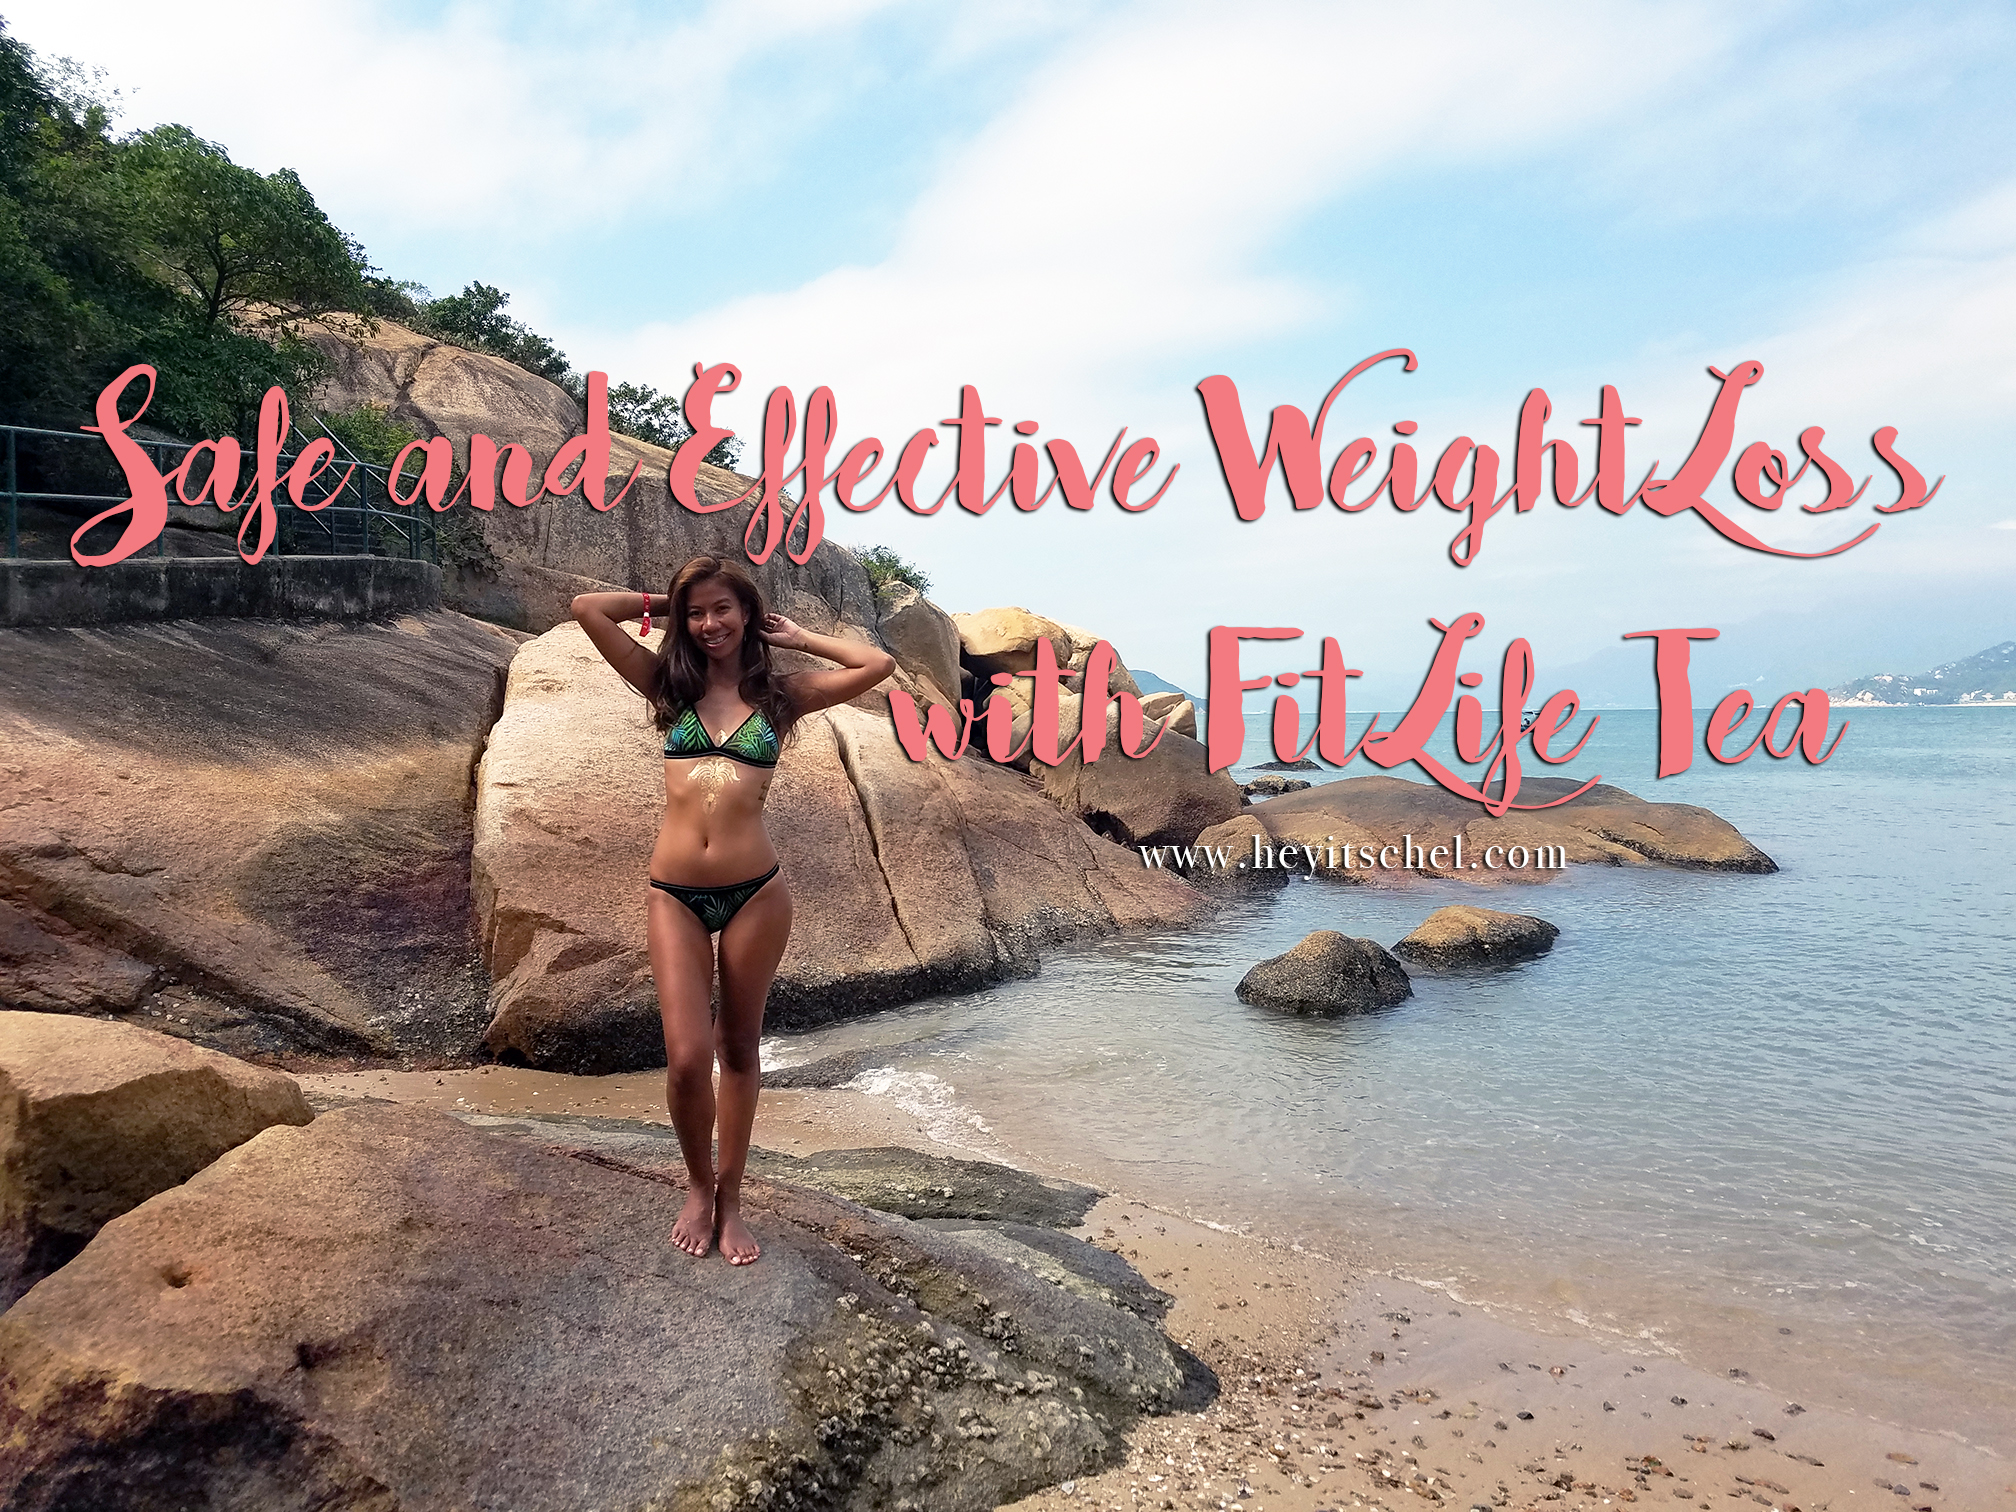 Safe and Effective Weight Loss with Fit Life Tea